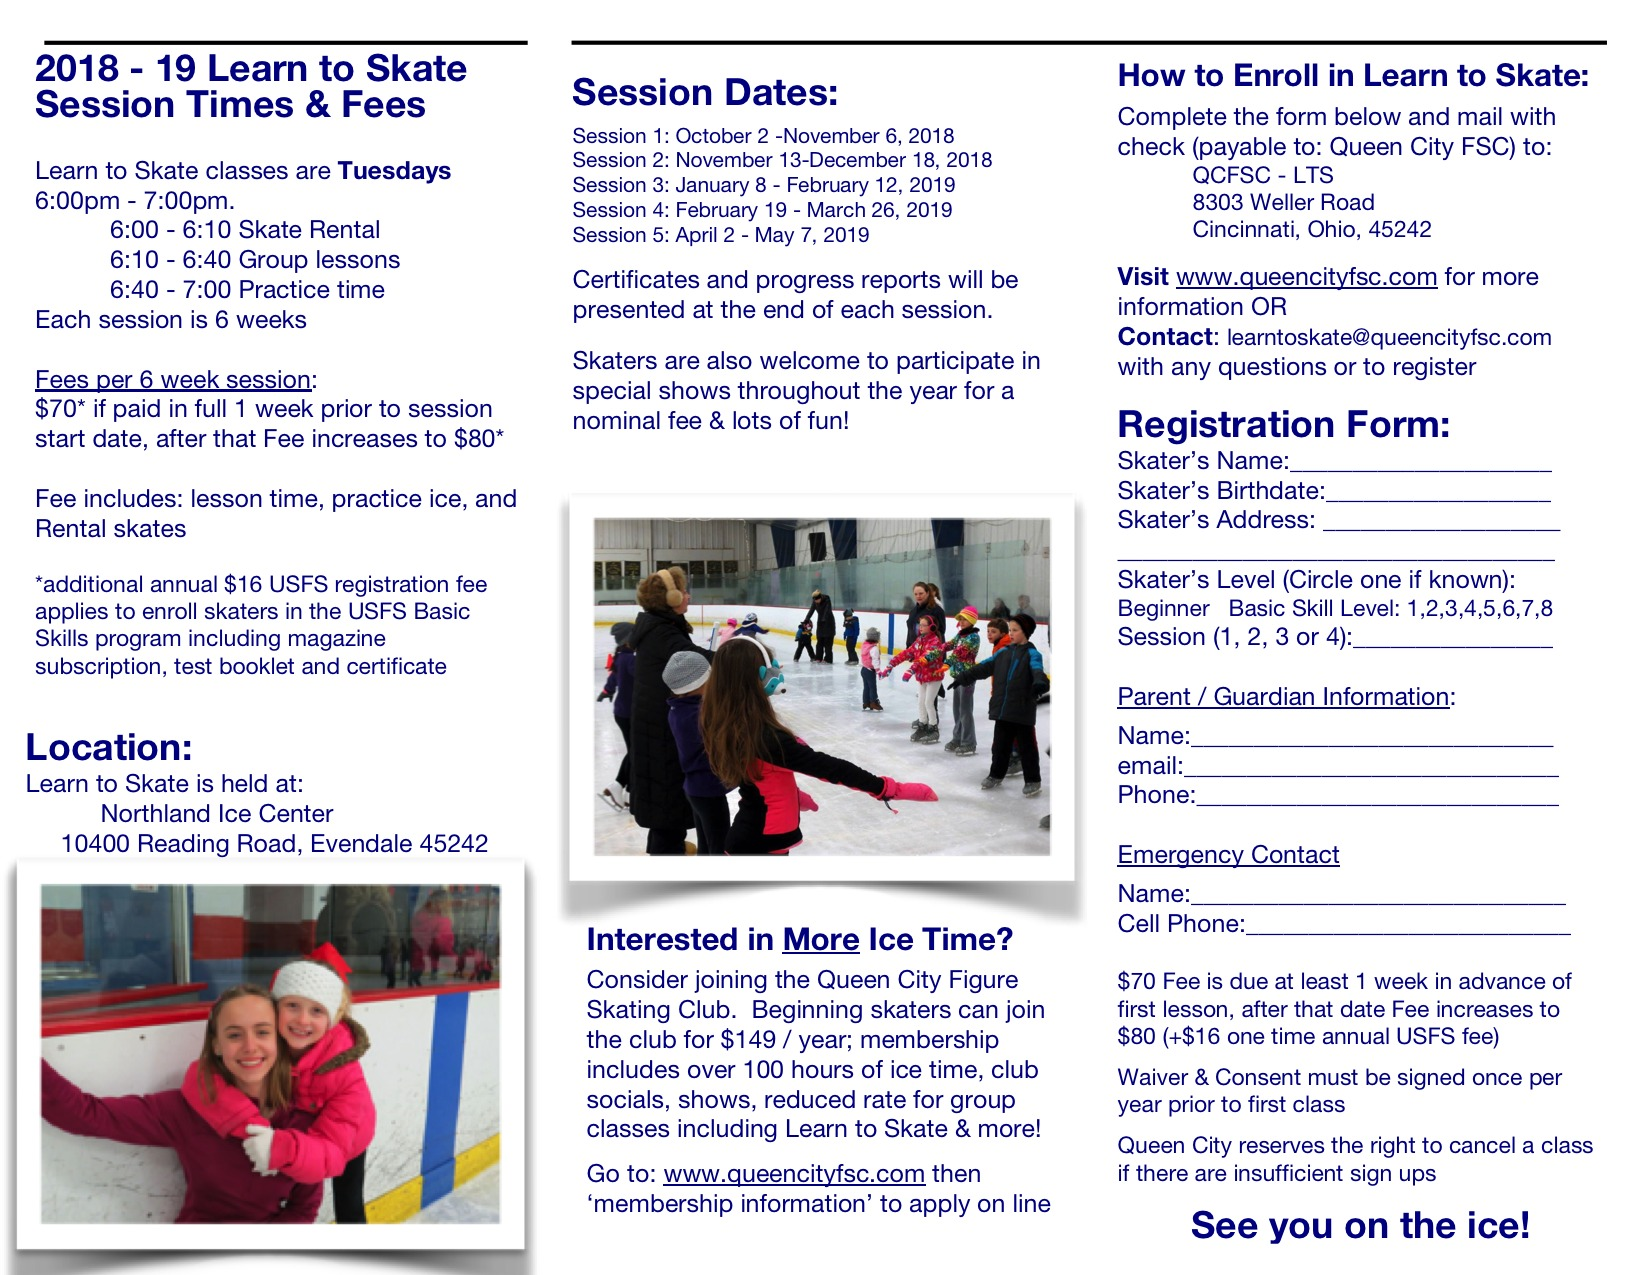 Learn to Skate 2018-19